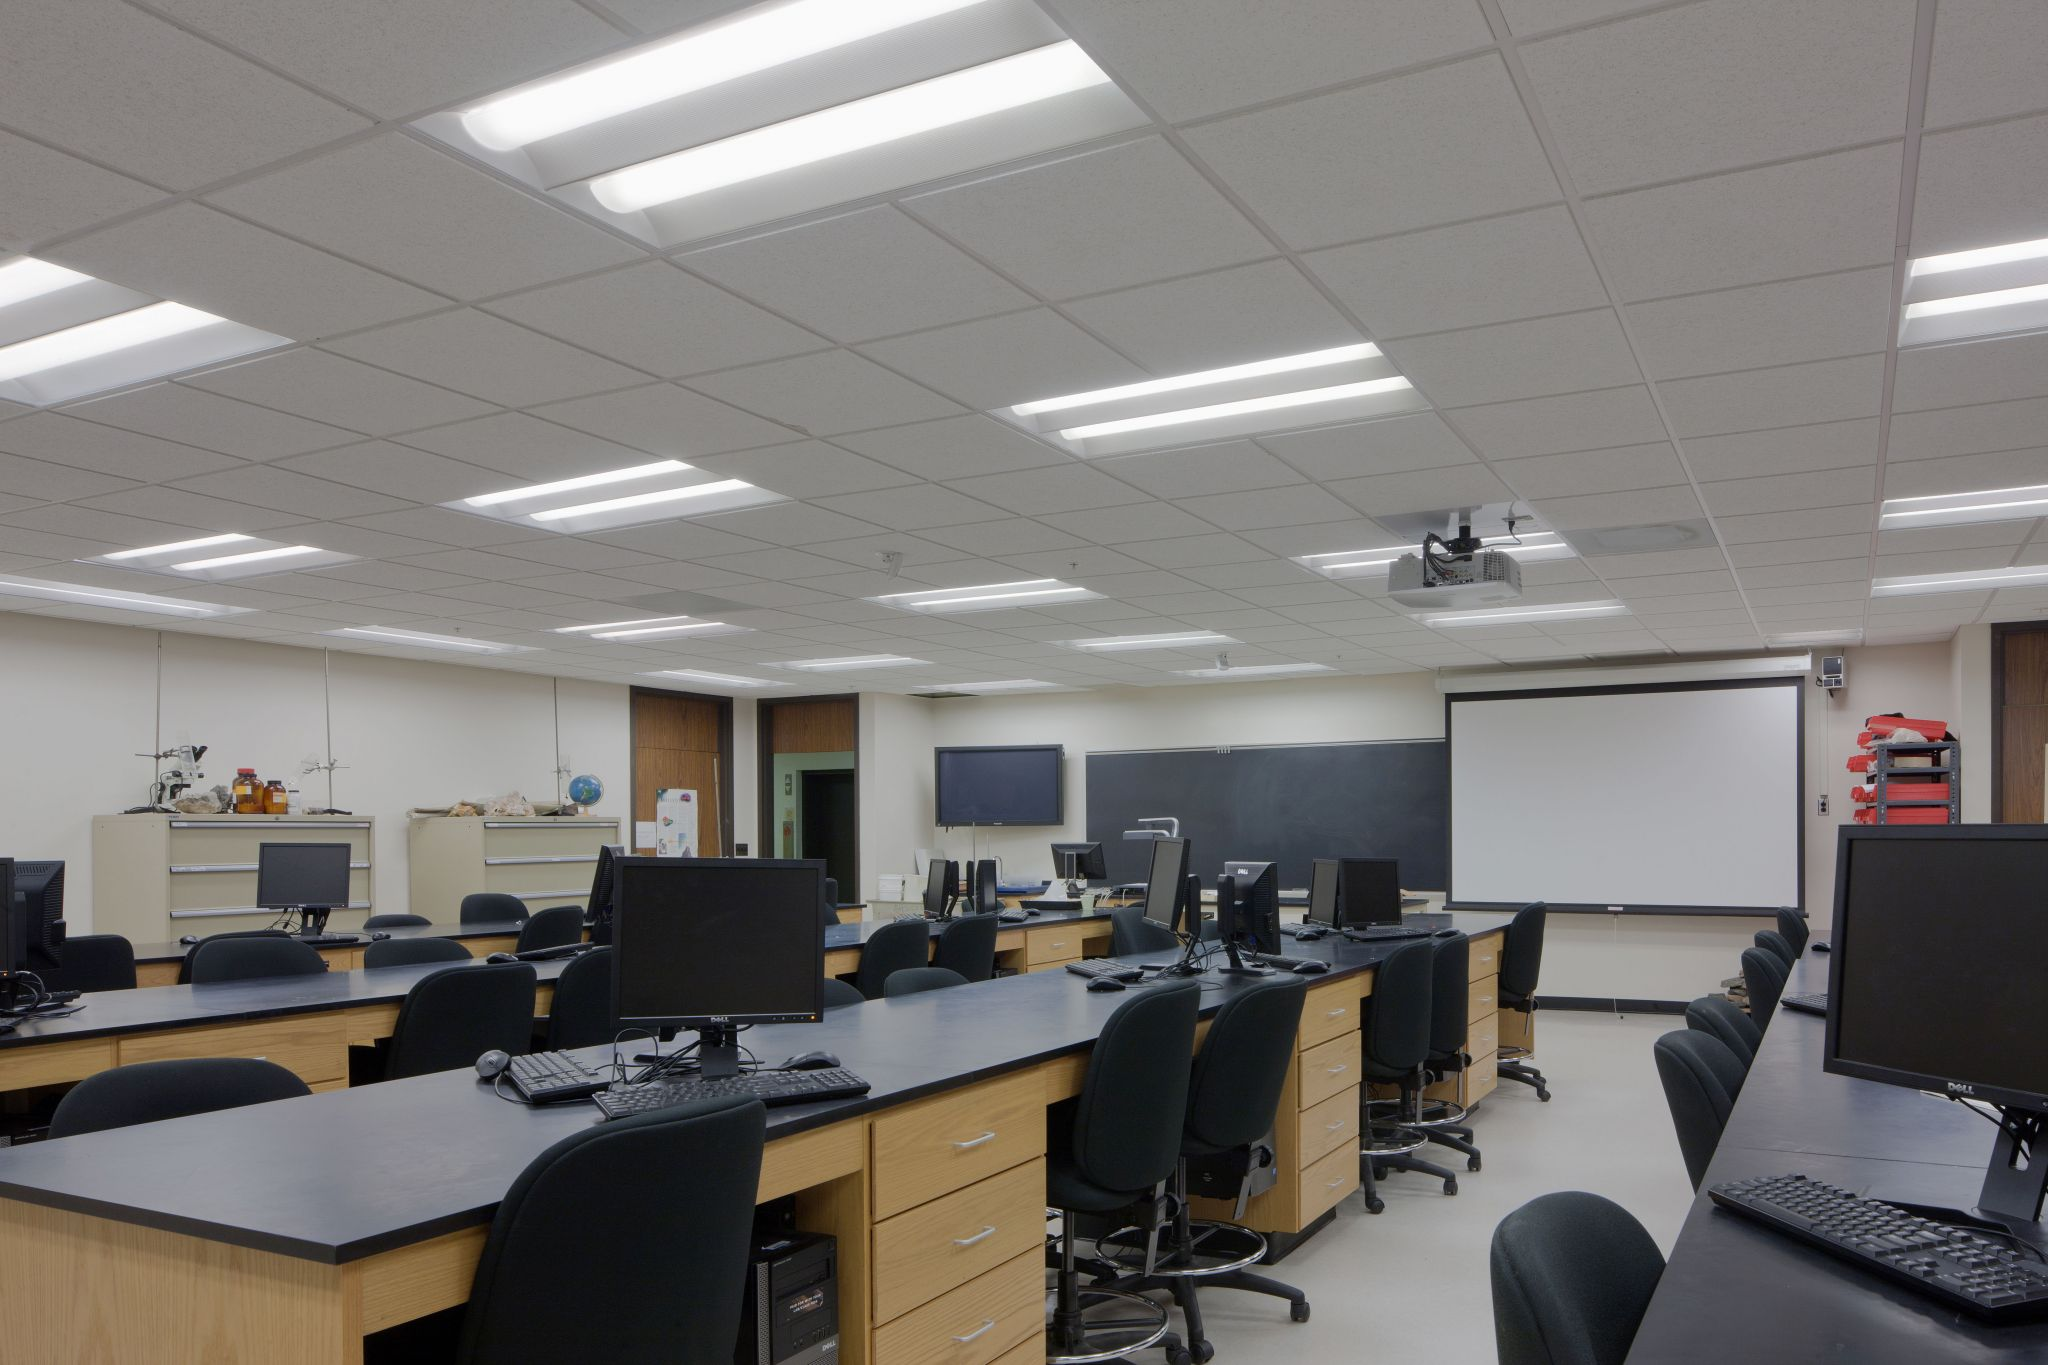 High-performance fluorescent fixtures were installed across Towson University campus in Maryland, including in science labs, for better quality lighting and energy savings.